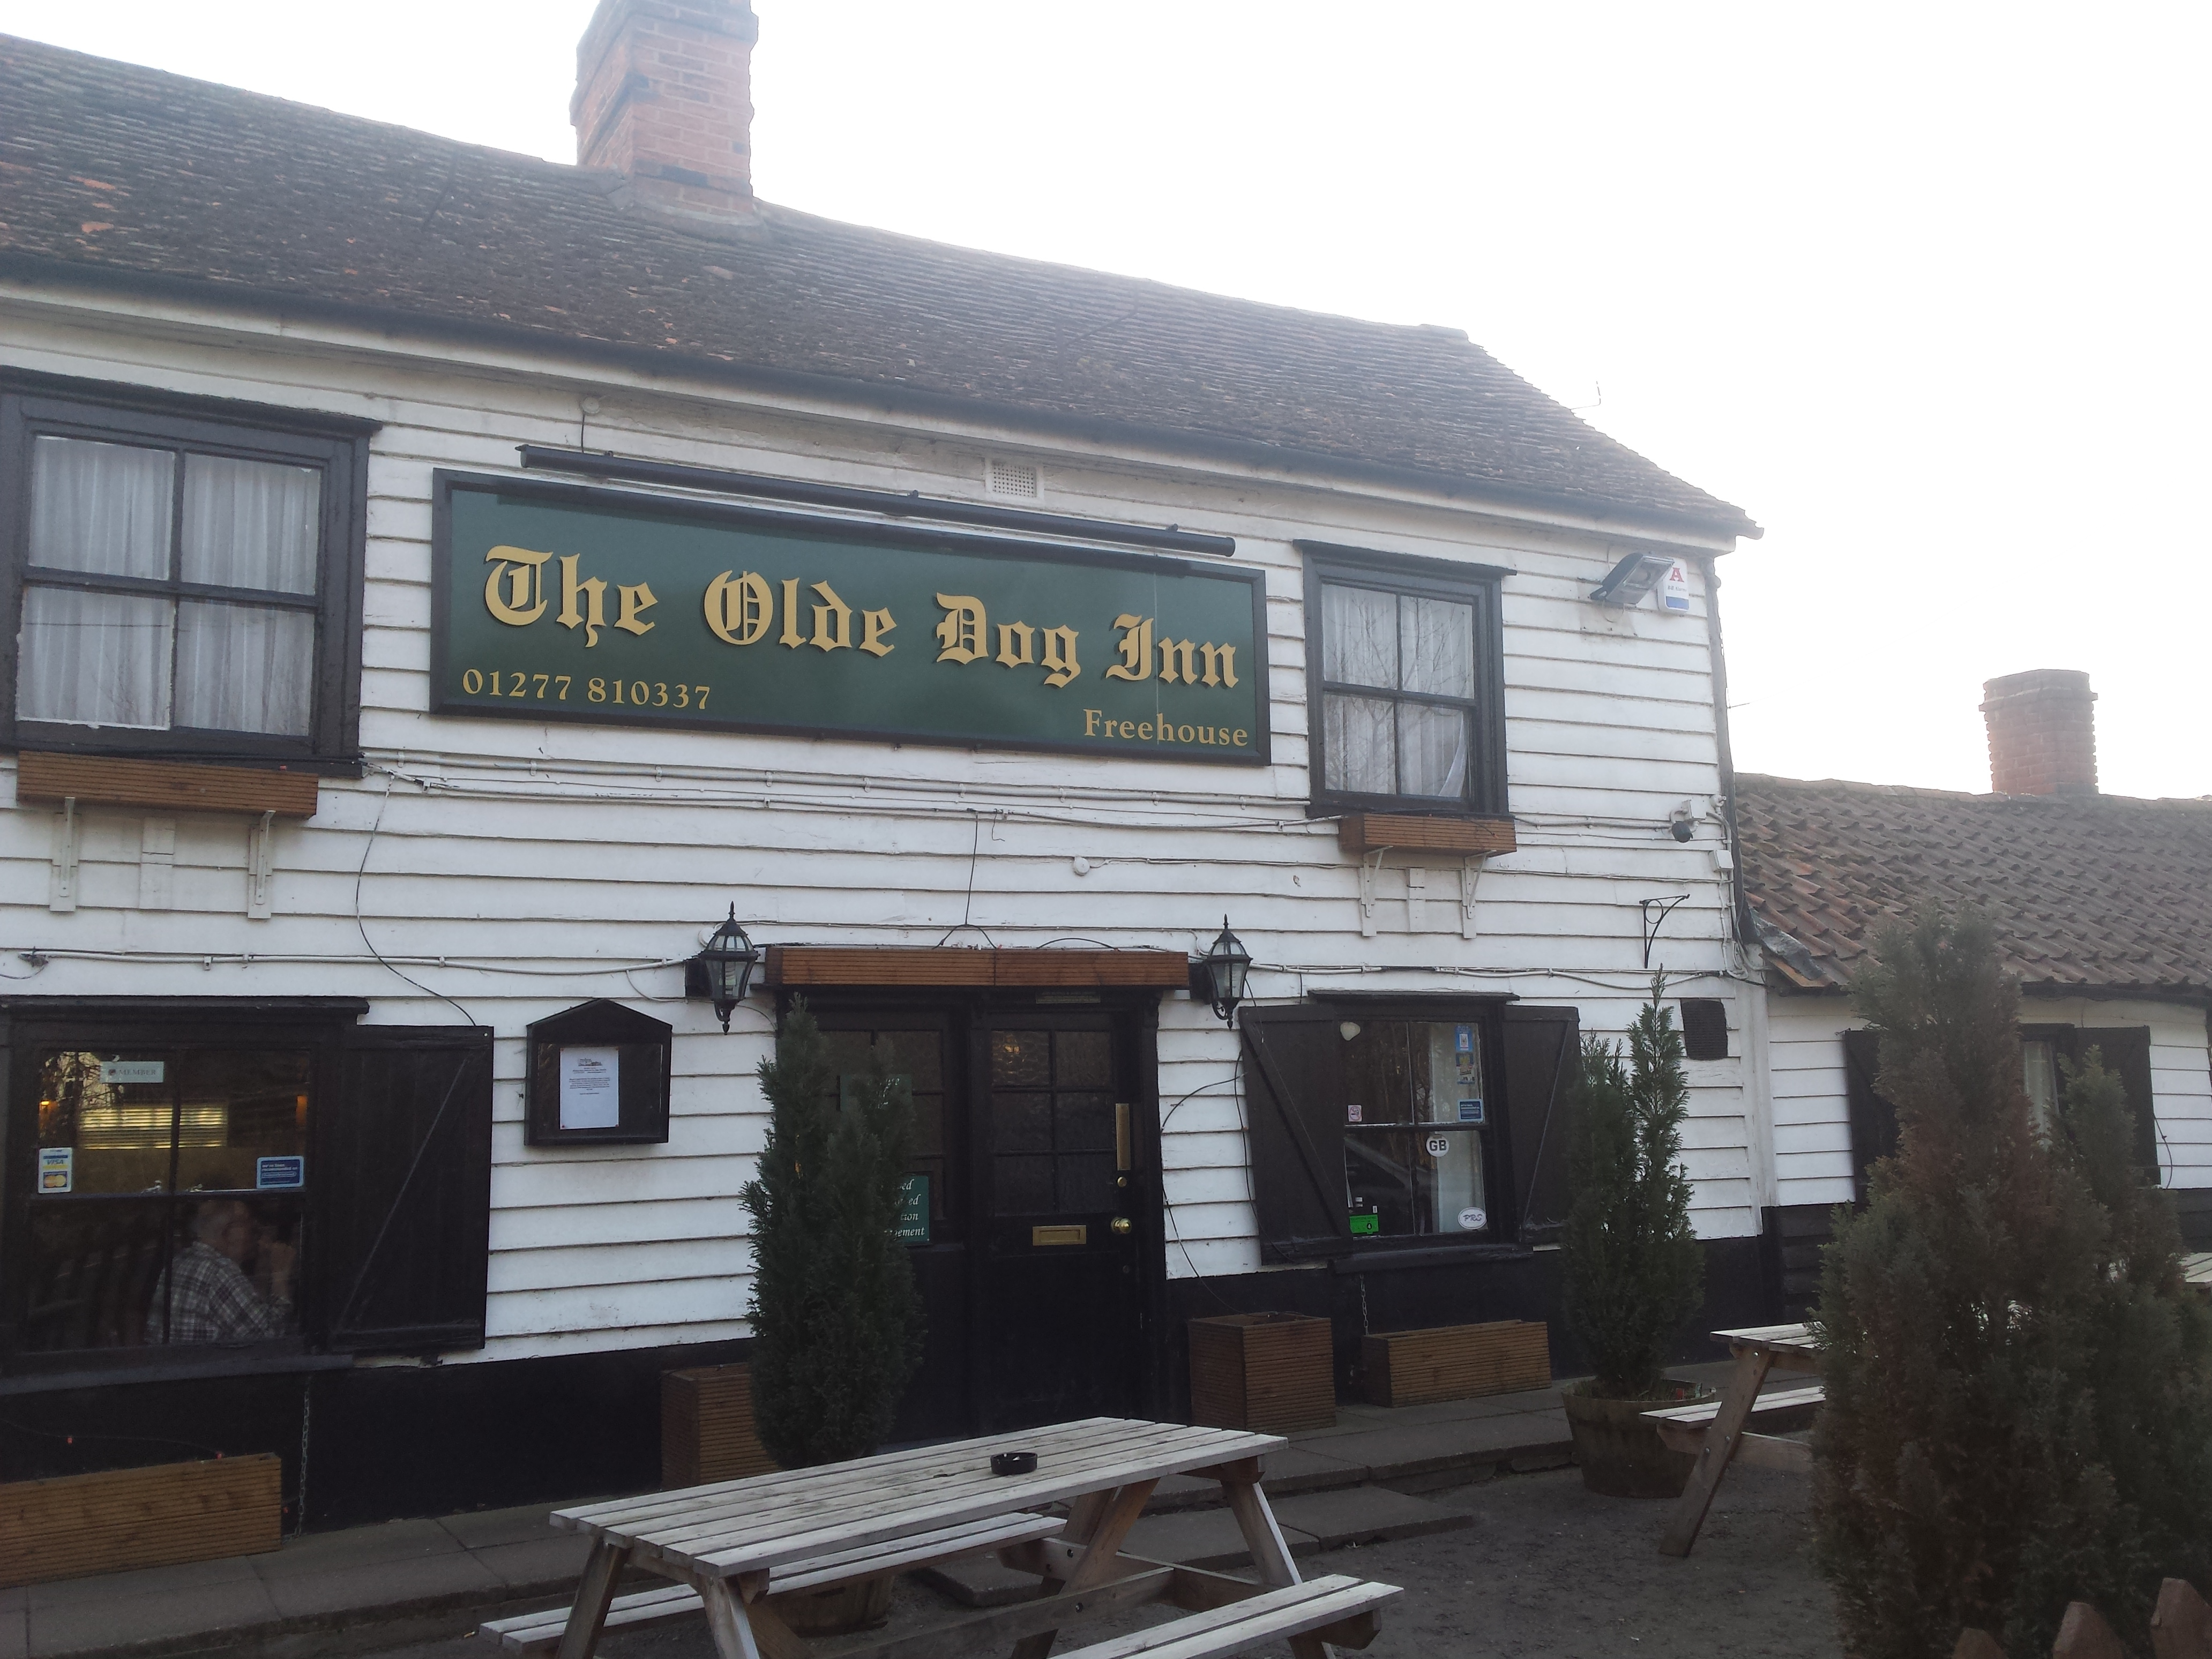 Here's some south essex pubs with a countryside charm